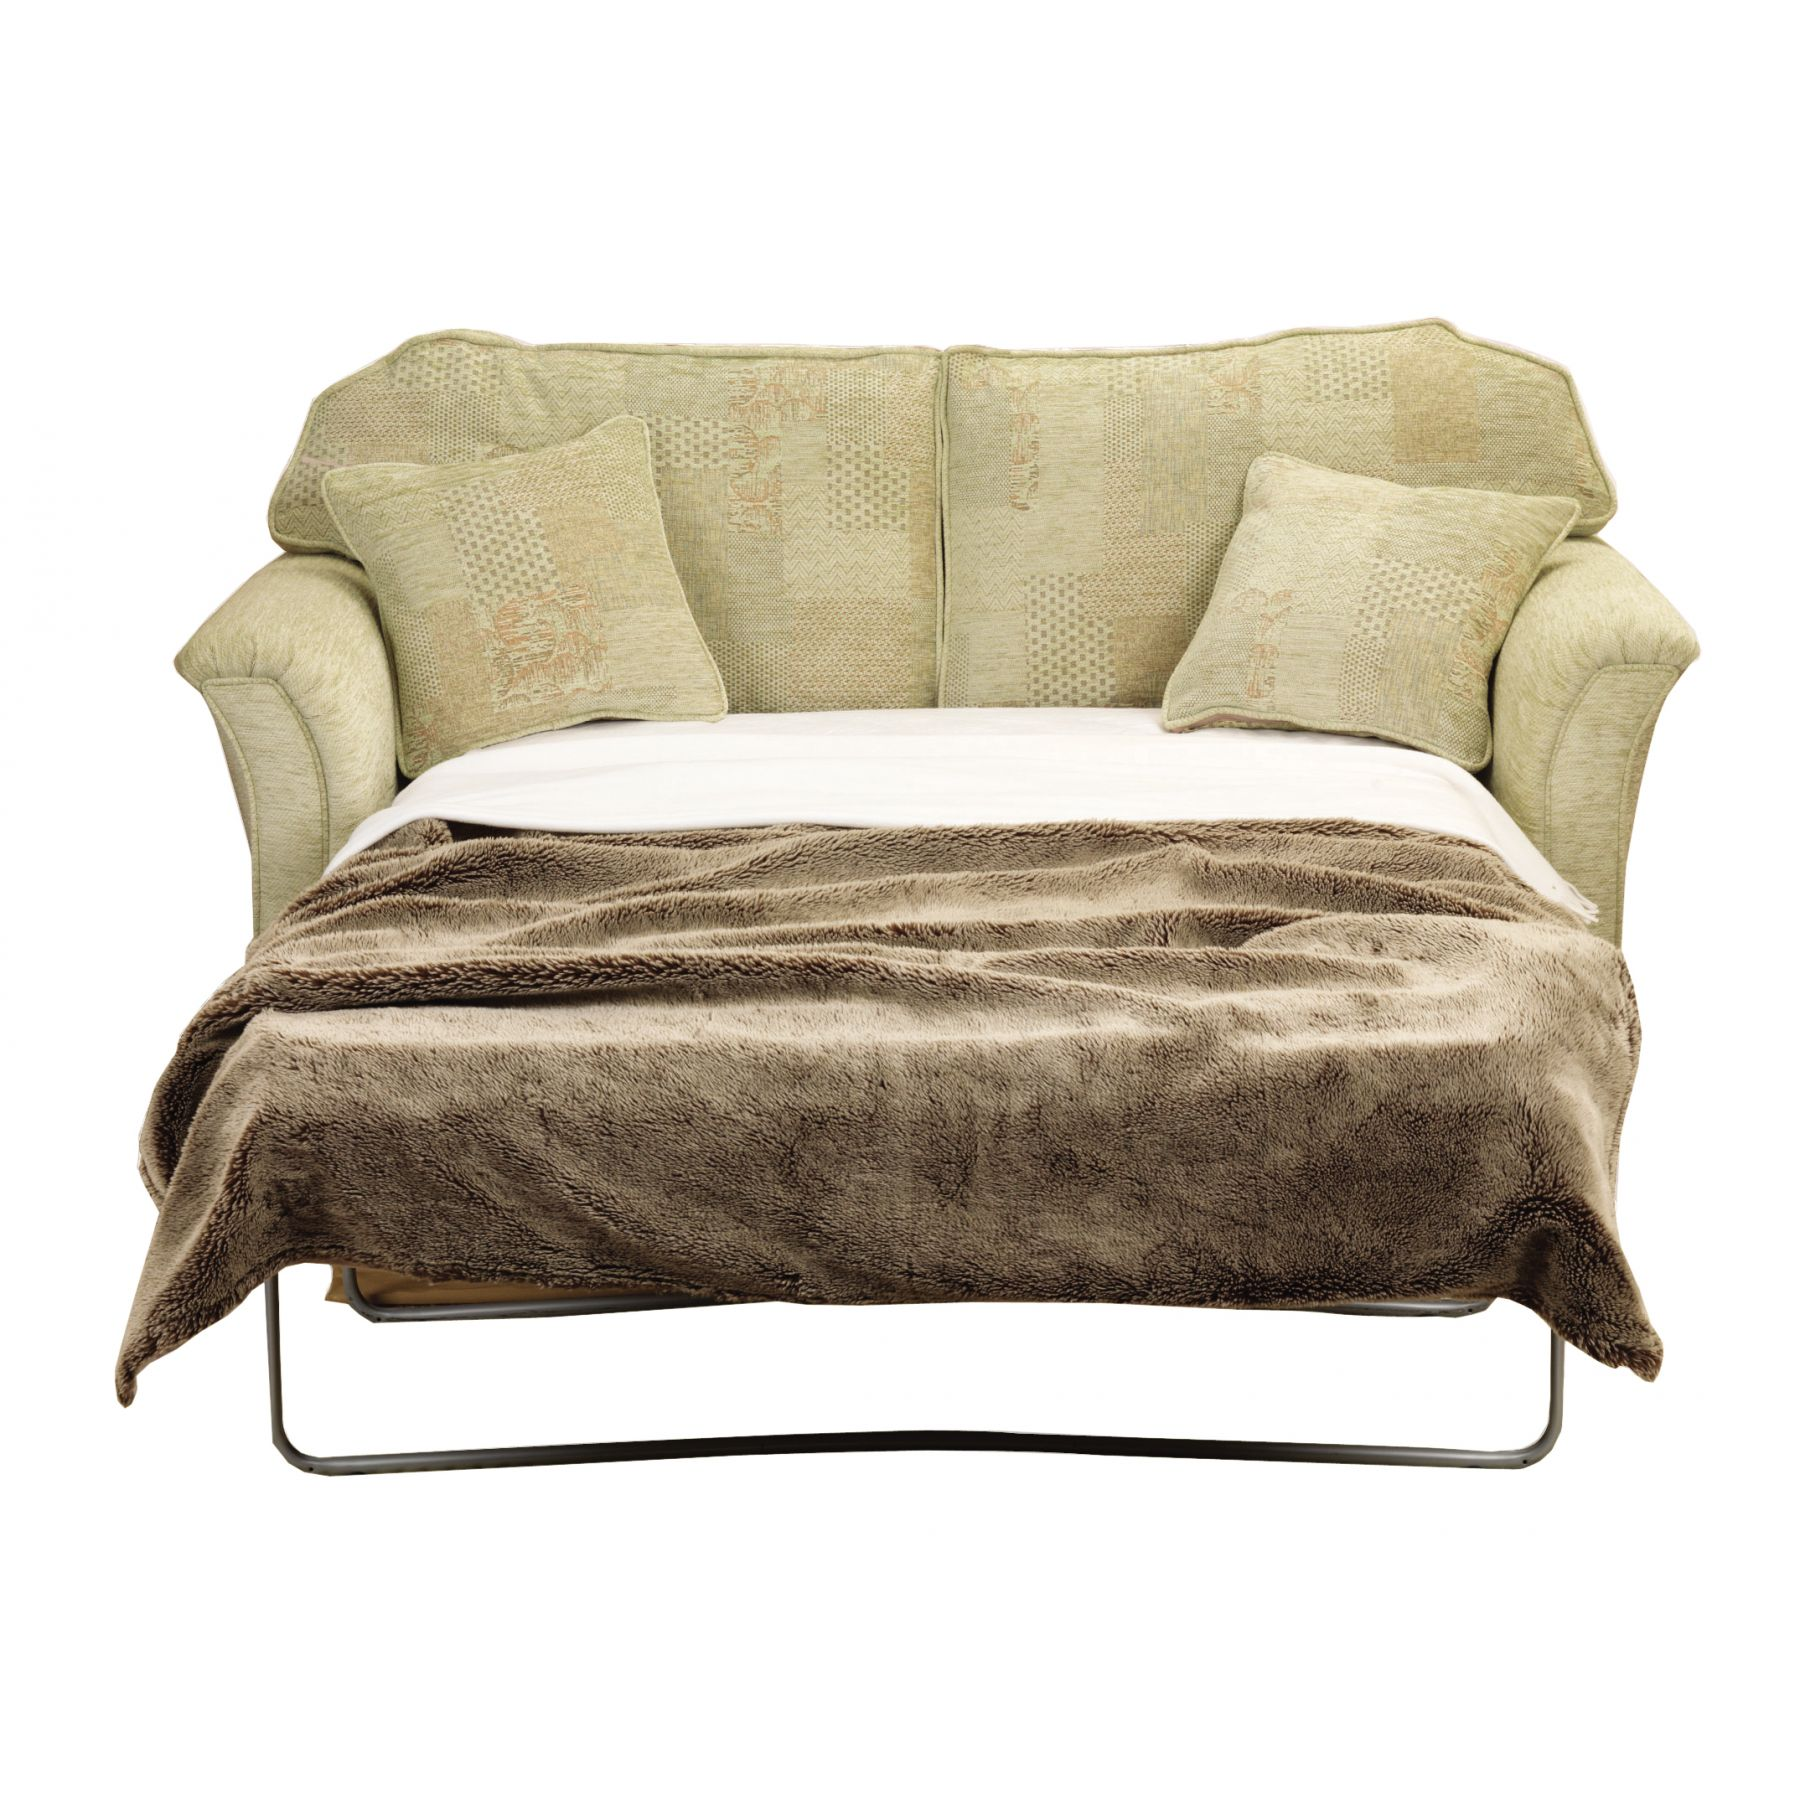 Convertible Loveseat Sofa Bed With Chaise Couch amp